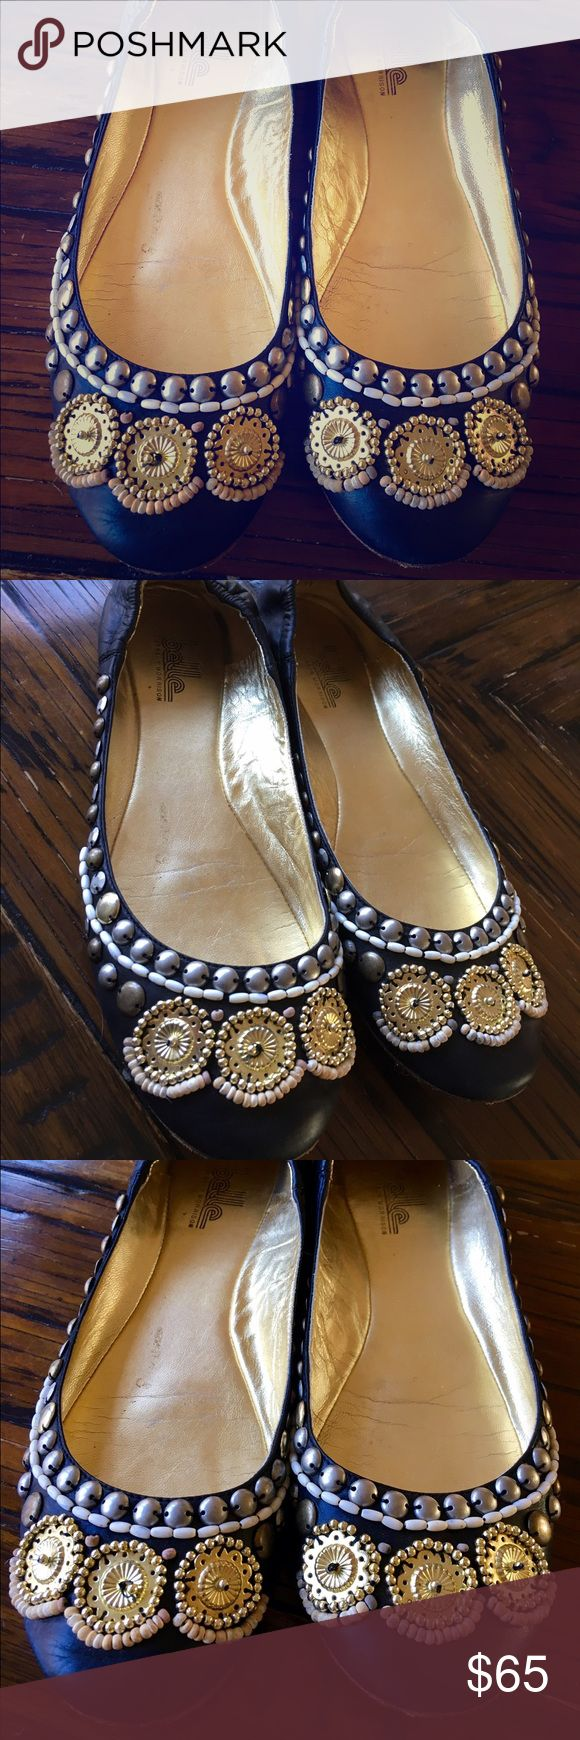 Belle by Sigerson Morrison embellished flats 38/8 These are gently used Belle by Sigerson Morrison flats with gorgeous embellishments. Gently worn, the only real signs of wear are on the bottom of the shoes. Look so beautiful with a flowy dress or skinny jeans. Belle by Sigerson Morrison Shoes Flats & Loafers